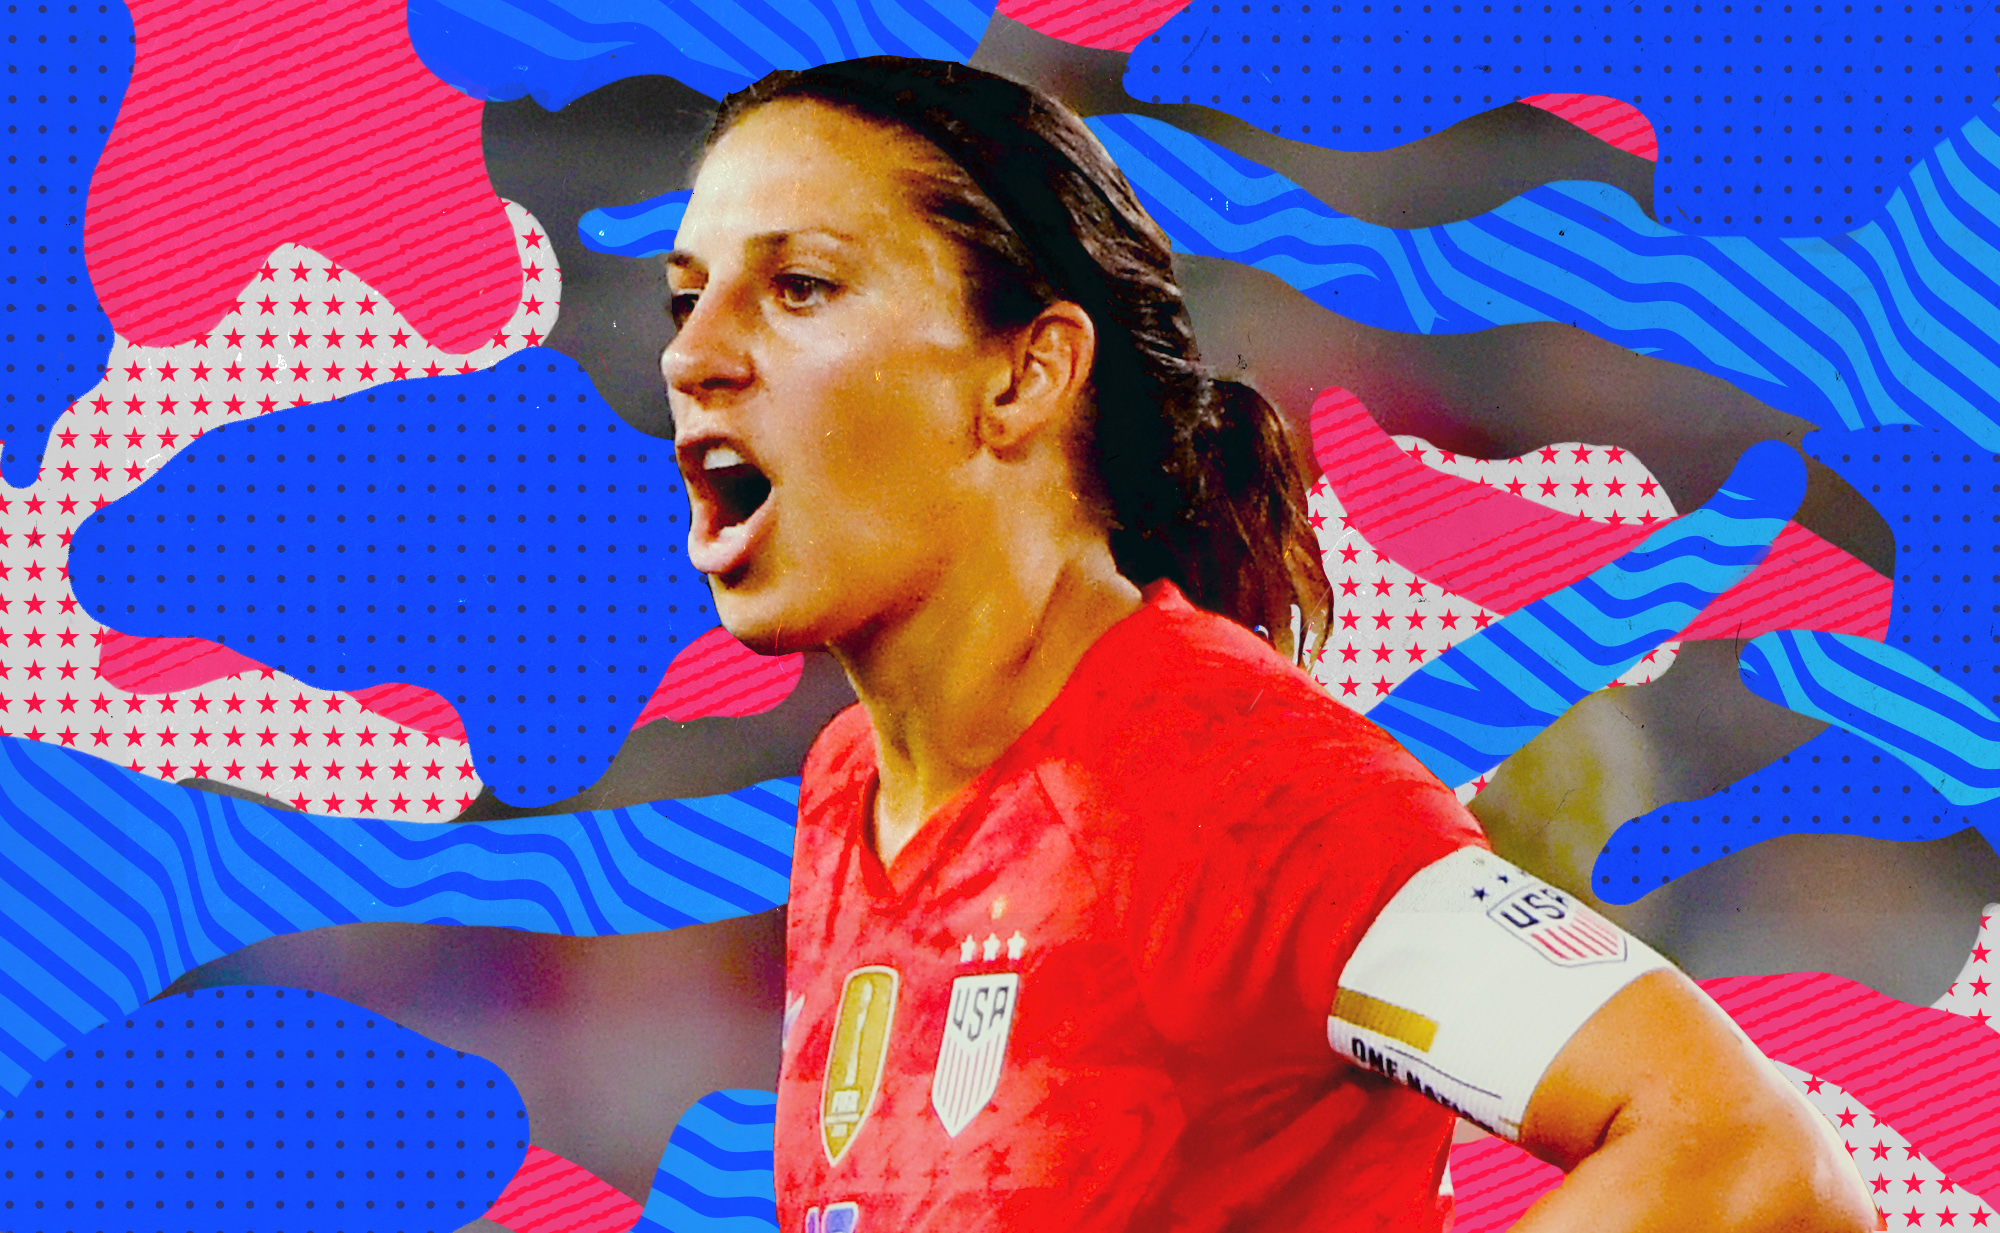 Carli Lloyd reacting after getting a yellow card while playing for the USWNT.